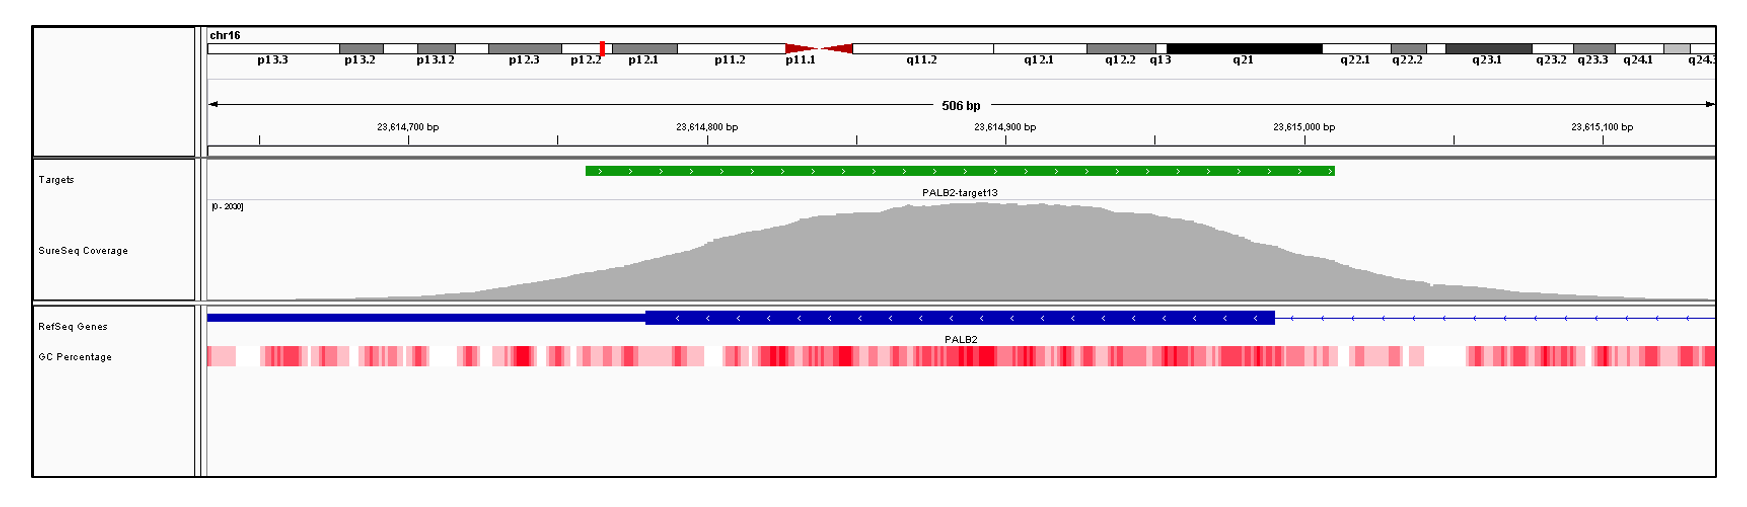 PALB2 Exon 13 (hg19 chr16:23614483-23614990). Depth of coverage per base (grey). Targeted region (green). Gene coding region as defined by RefSeq (blue). GC percentage (red). Image